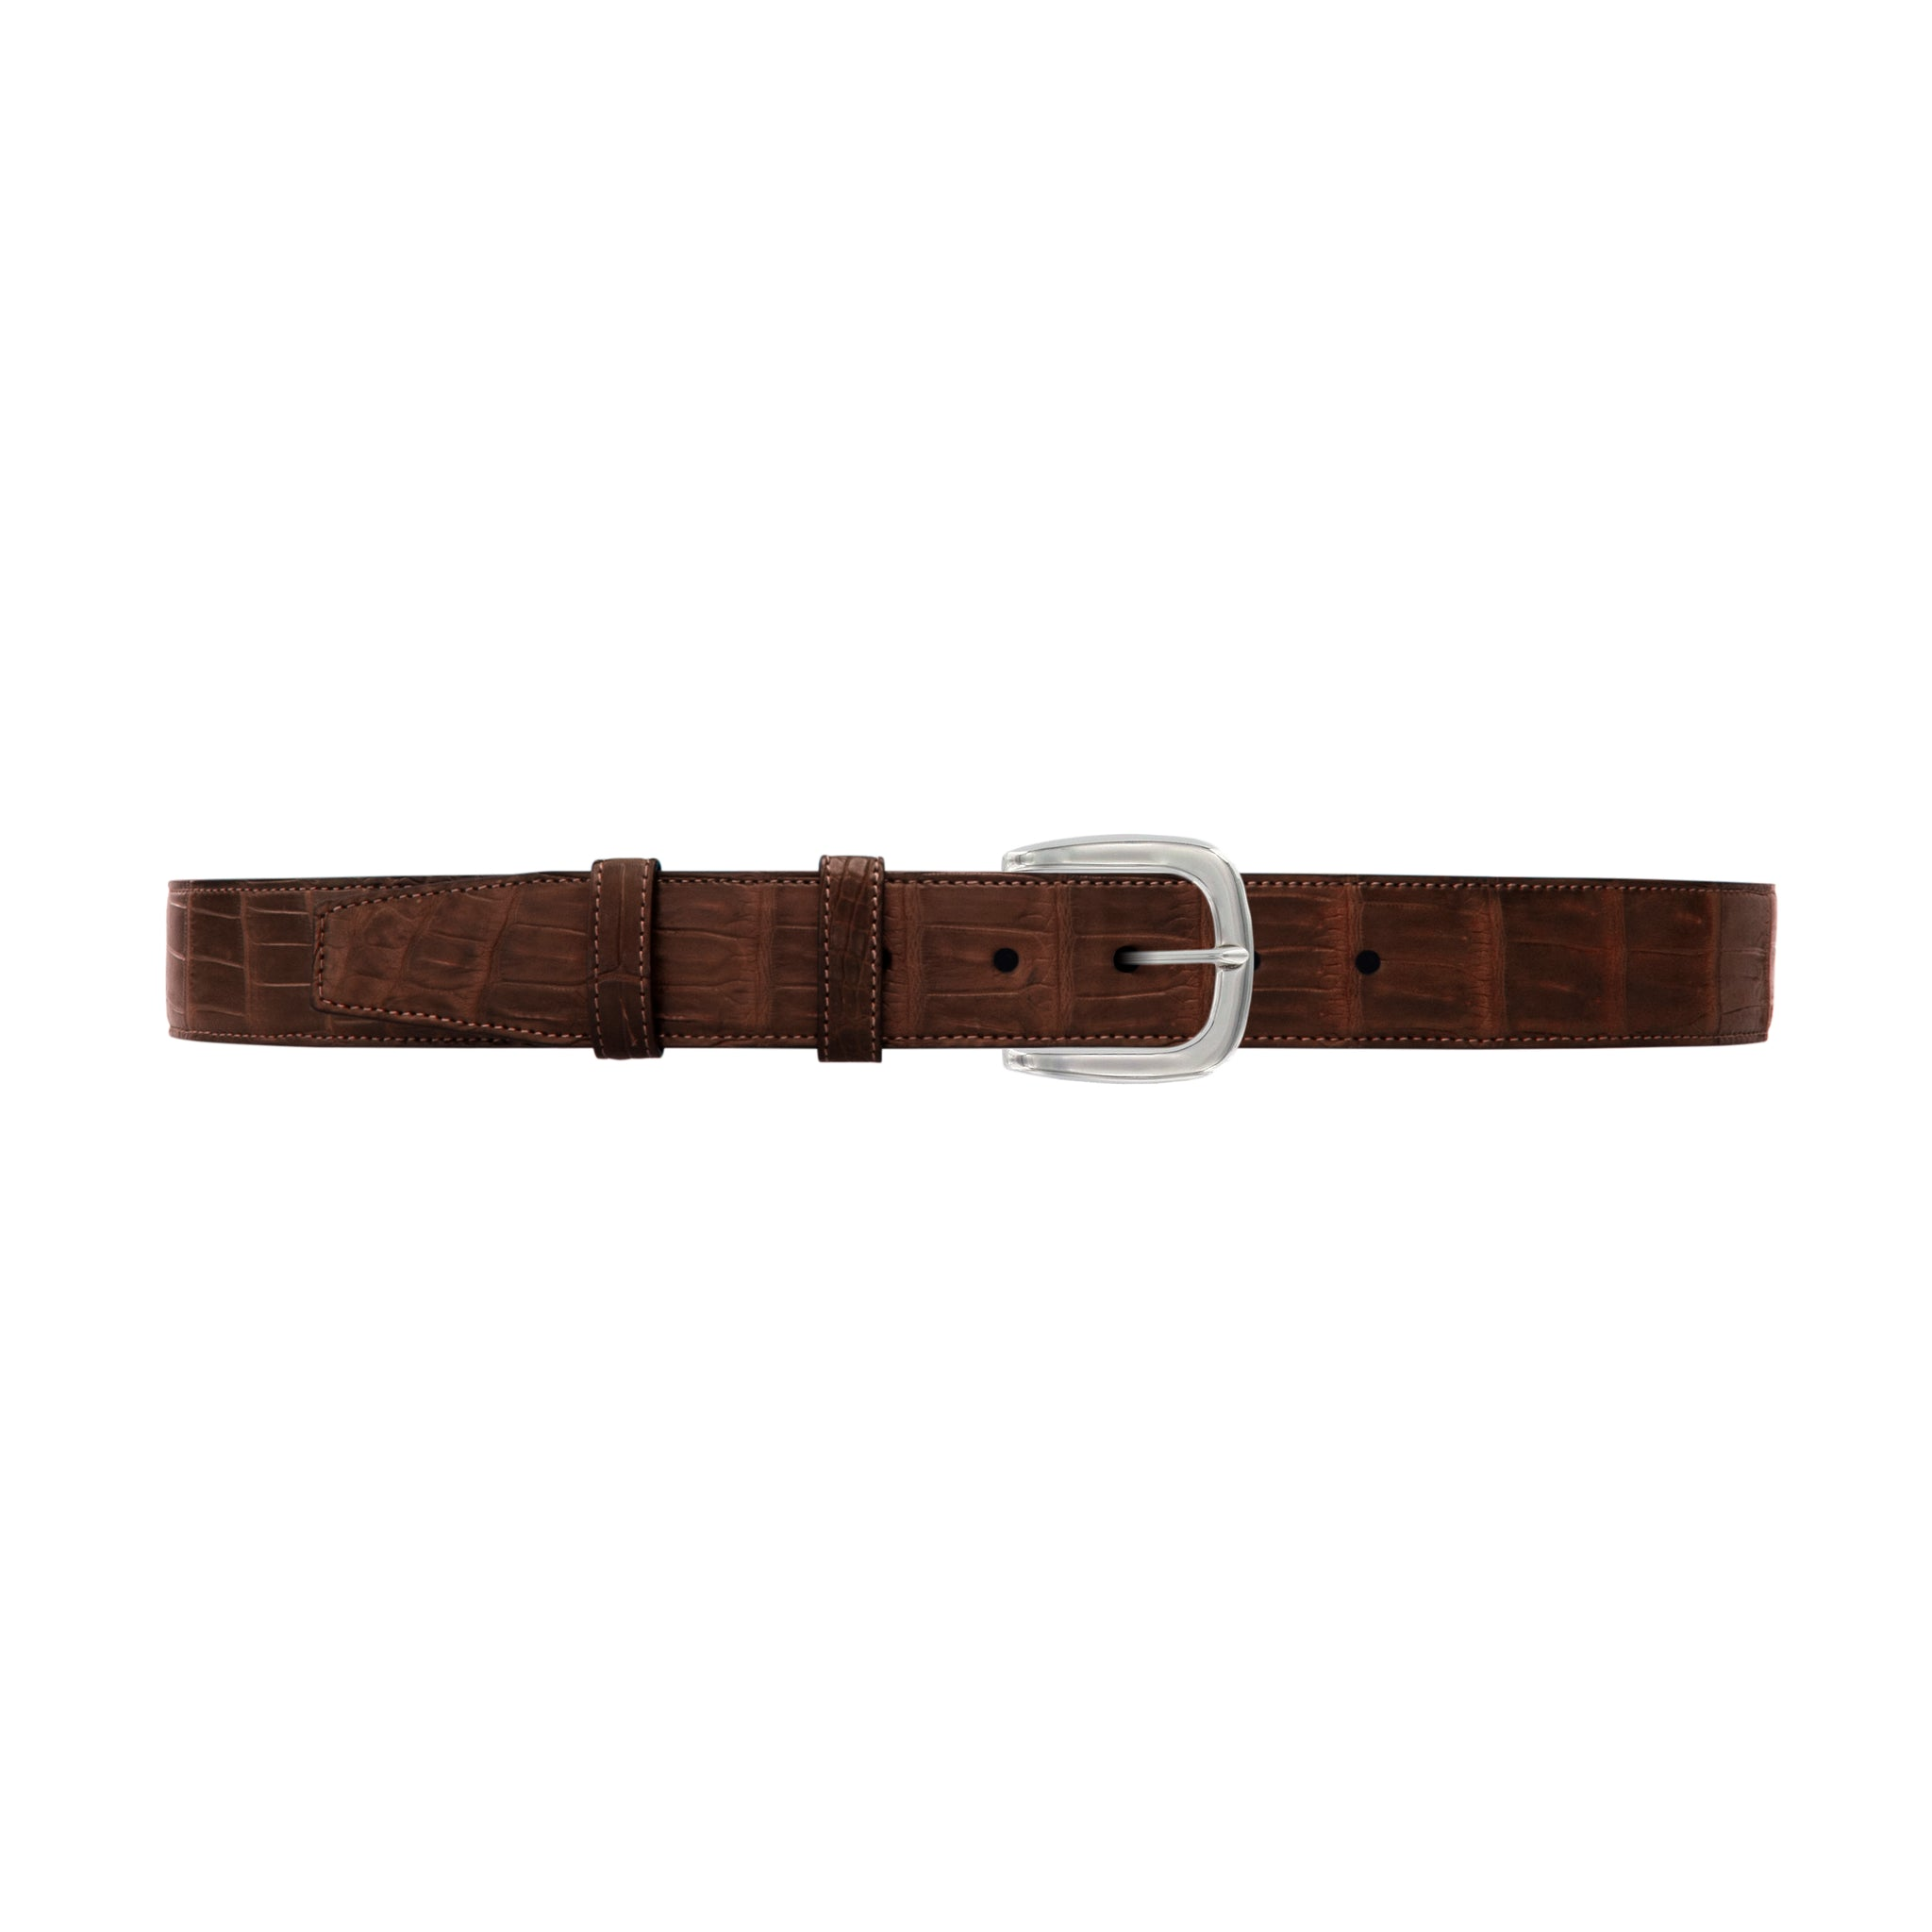 "1 1/2"" Cognac Classic Belt with Oxford Cocktail Buckle in Polished Nickel"